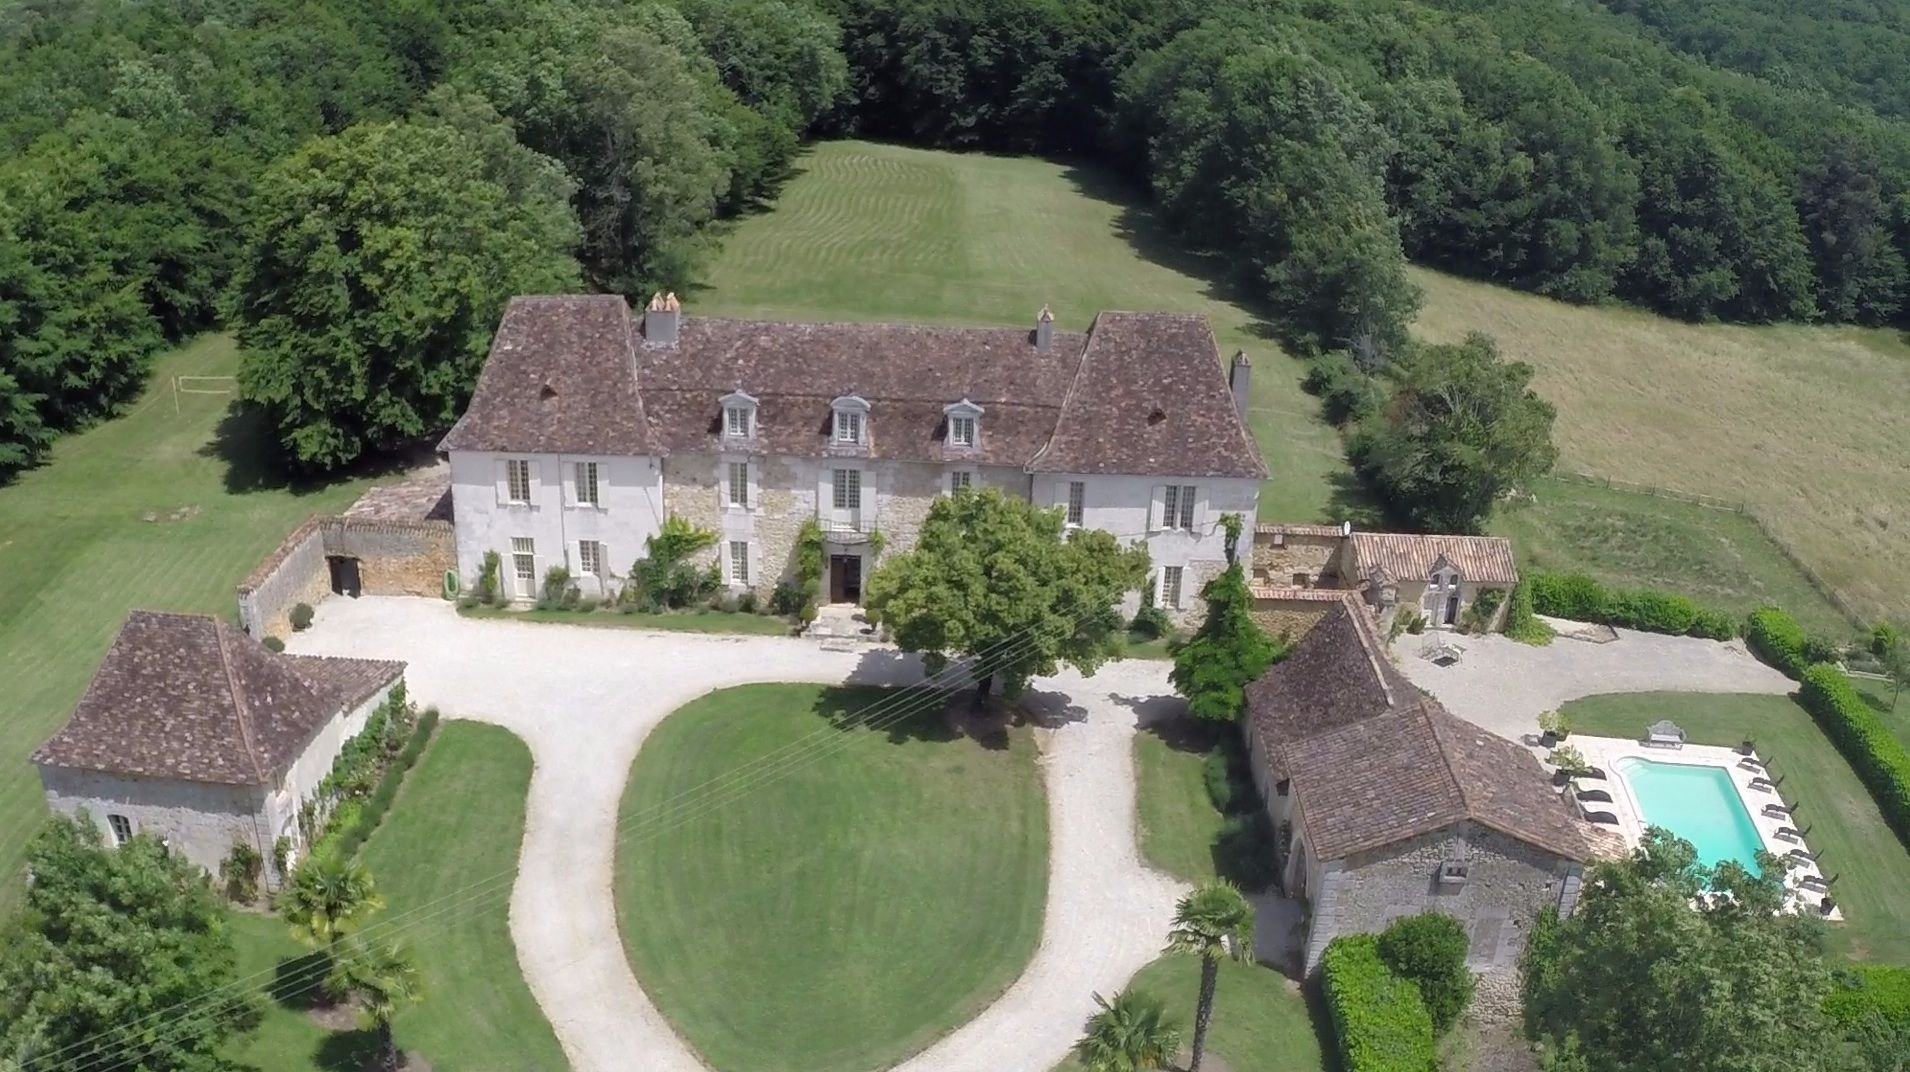 Chateau Pool 1 Jpg 1 910 1 072 Pixels French Chateau Mansion Plans Holiday Rental